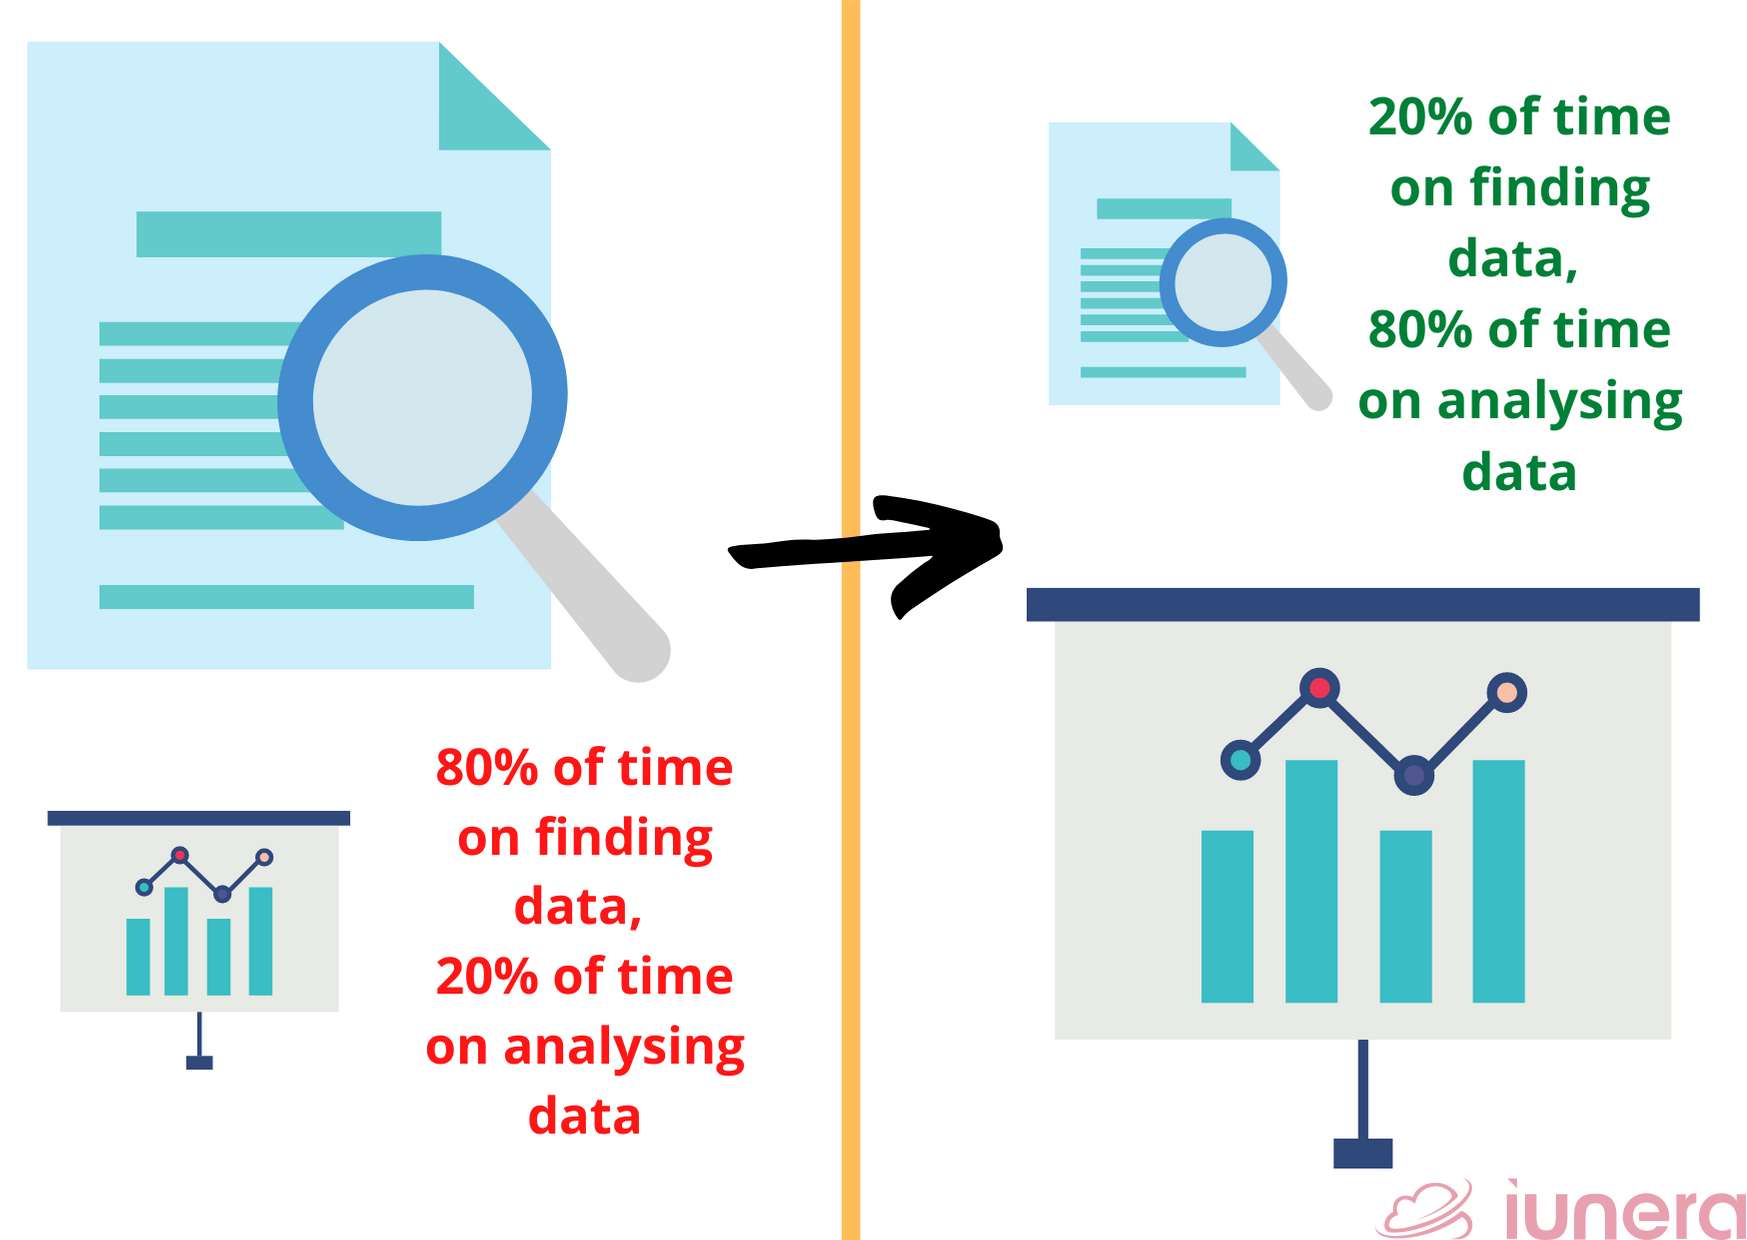 How a data catalog cuts time wasted on finding data to spend more time on analysing data.